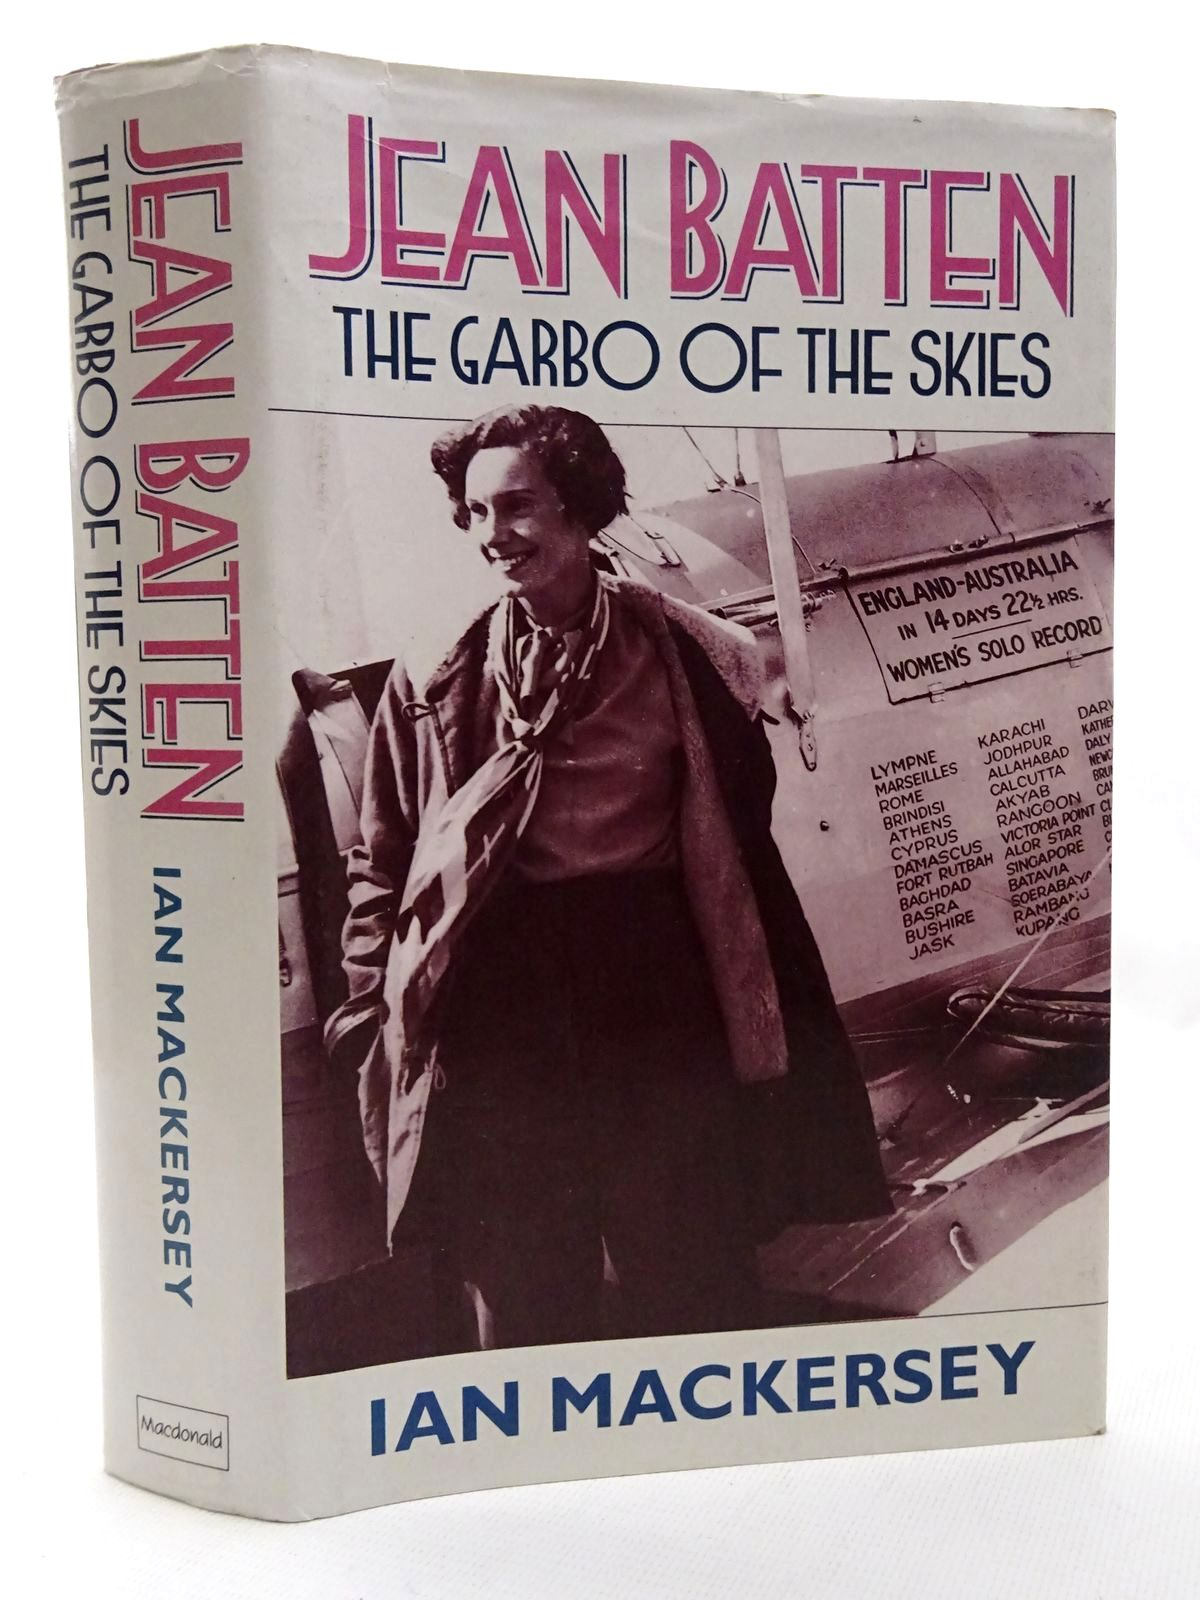 Photo of JEAN BATTEN THE GARBO OF THE SKIES written by Mackersey, Ian published by MacDonald (STOCK CODE: 1610243)  for sale by Stella & Rose's Books